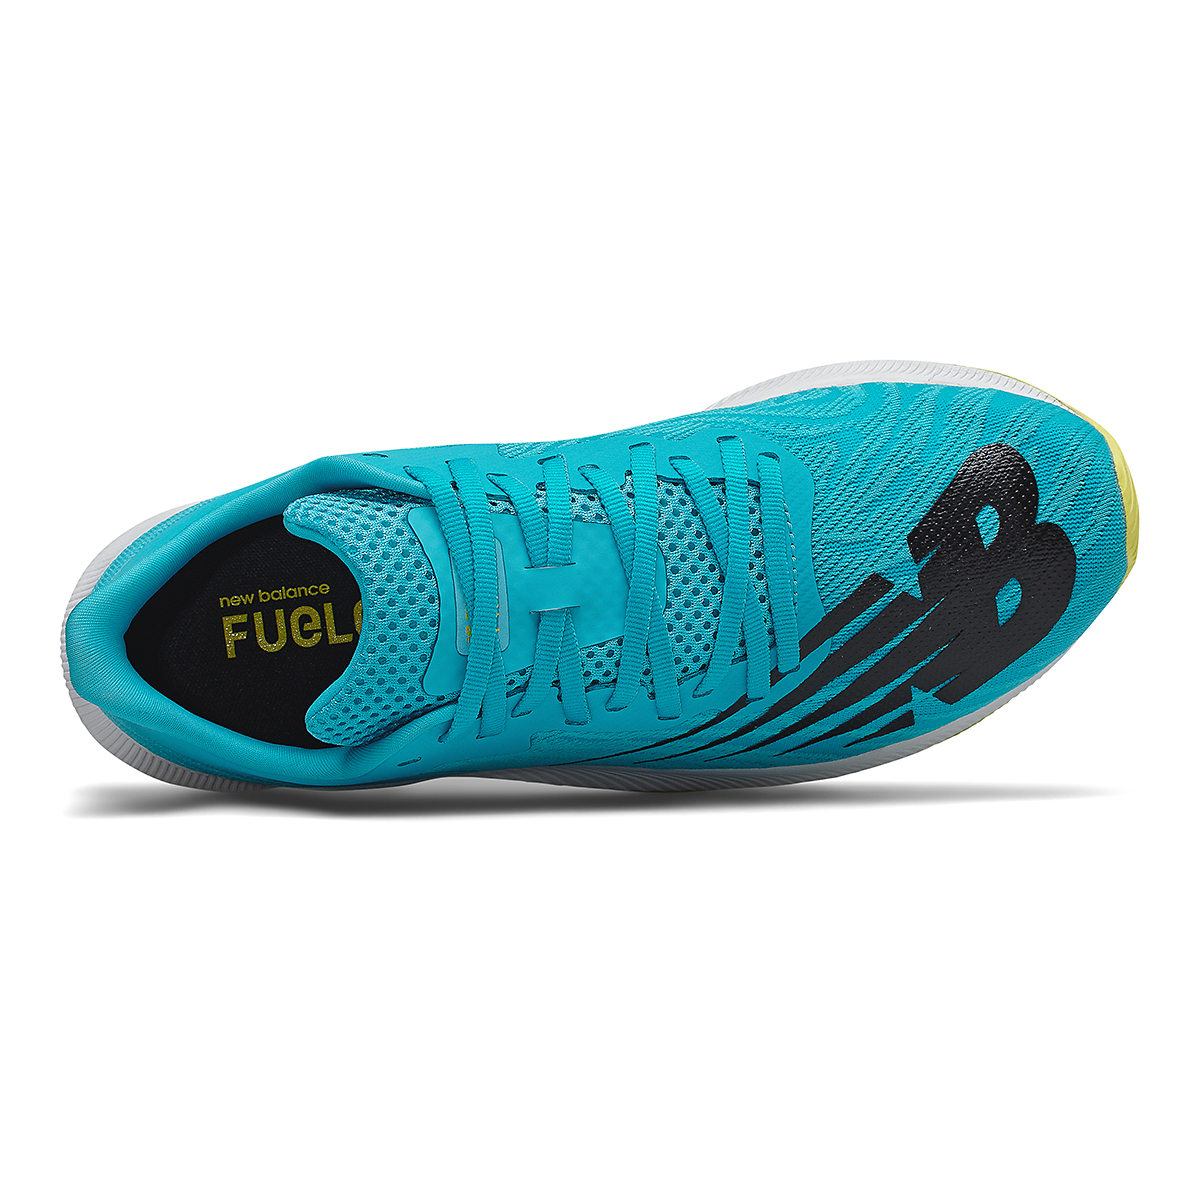 Men's New Balance Fuelcell Prism Running Shoe - Color: Virtual Sky/First Light - Size: 7 - Width: Wide, Virtual Sky/First Light, large, image 3